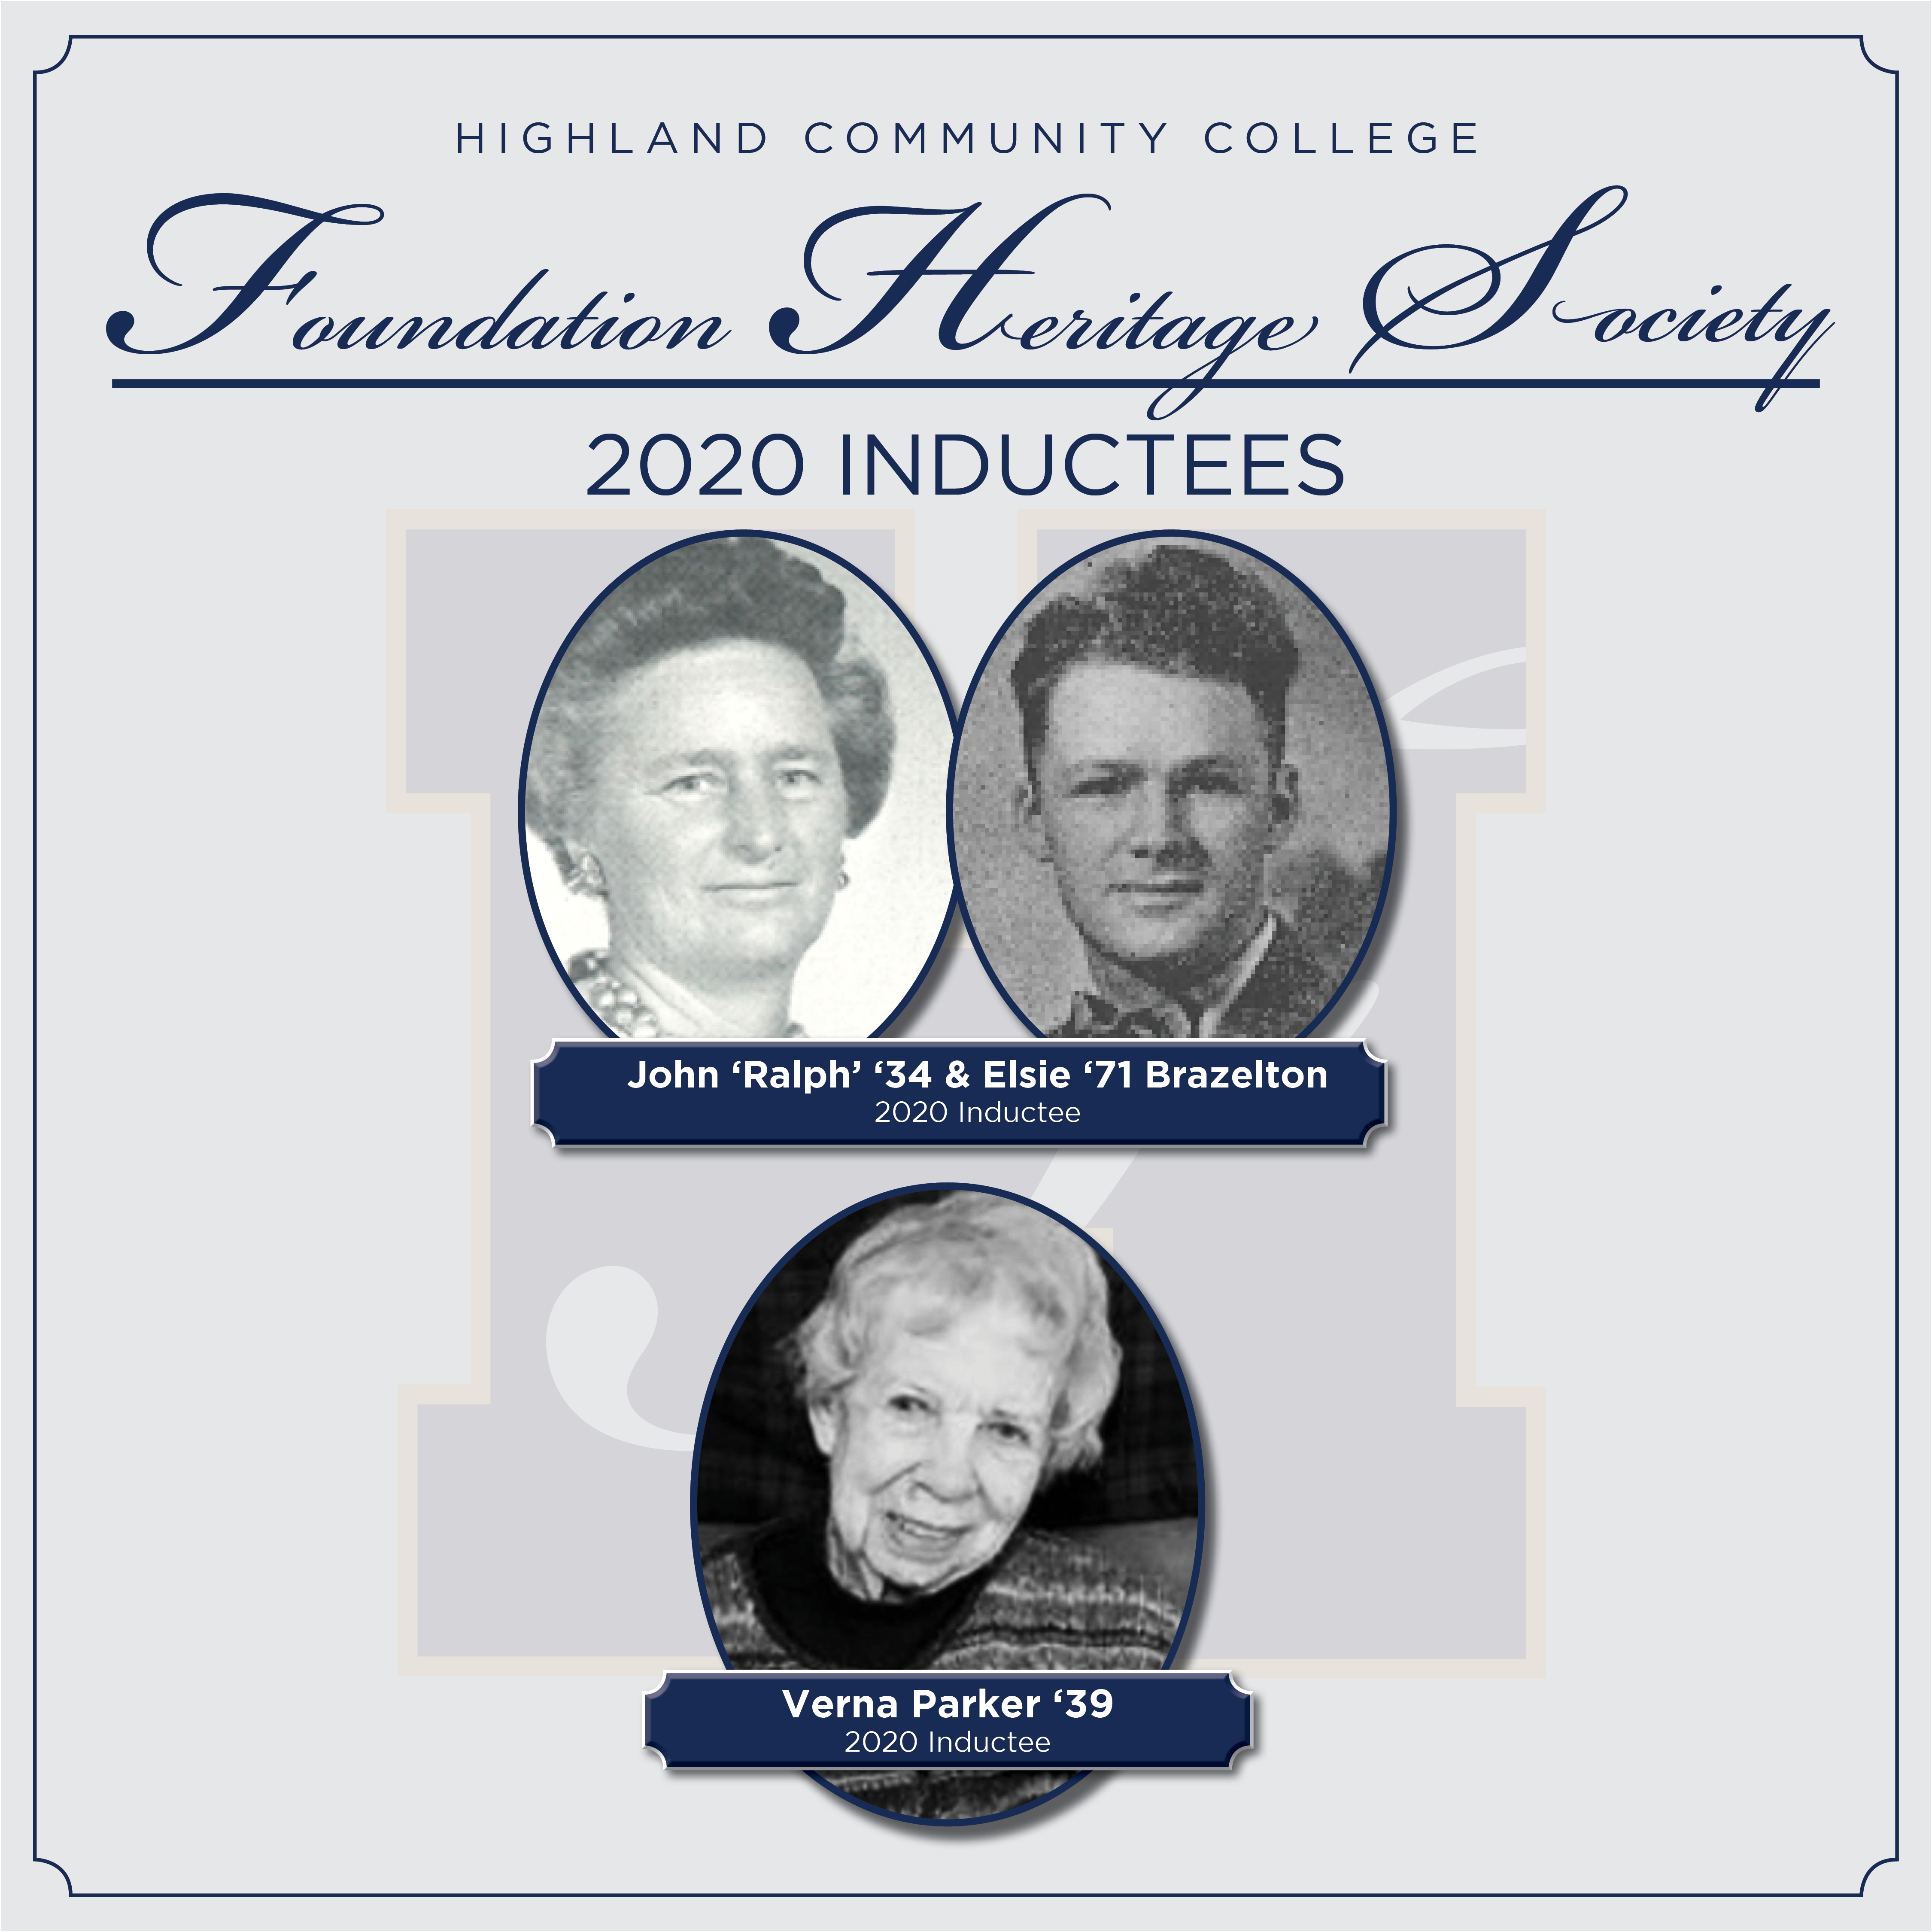 The Highland Community College Foundation's Heritage Society Welcomes New Members